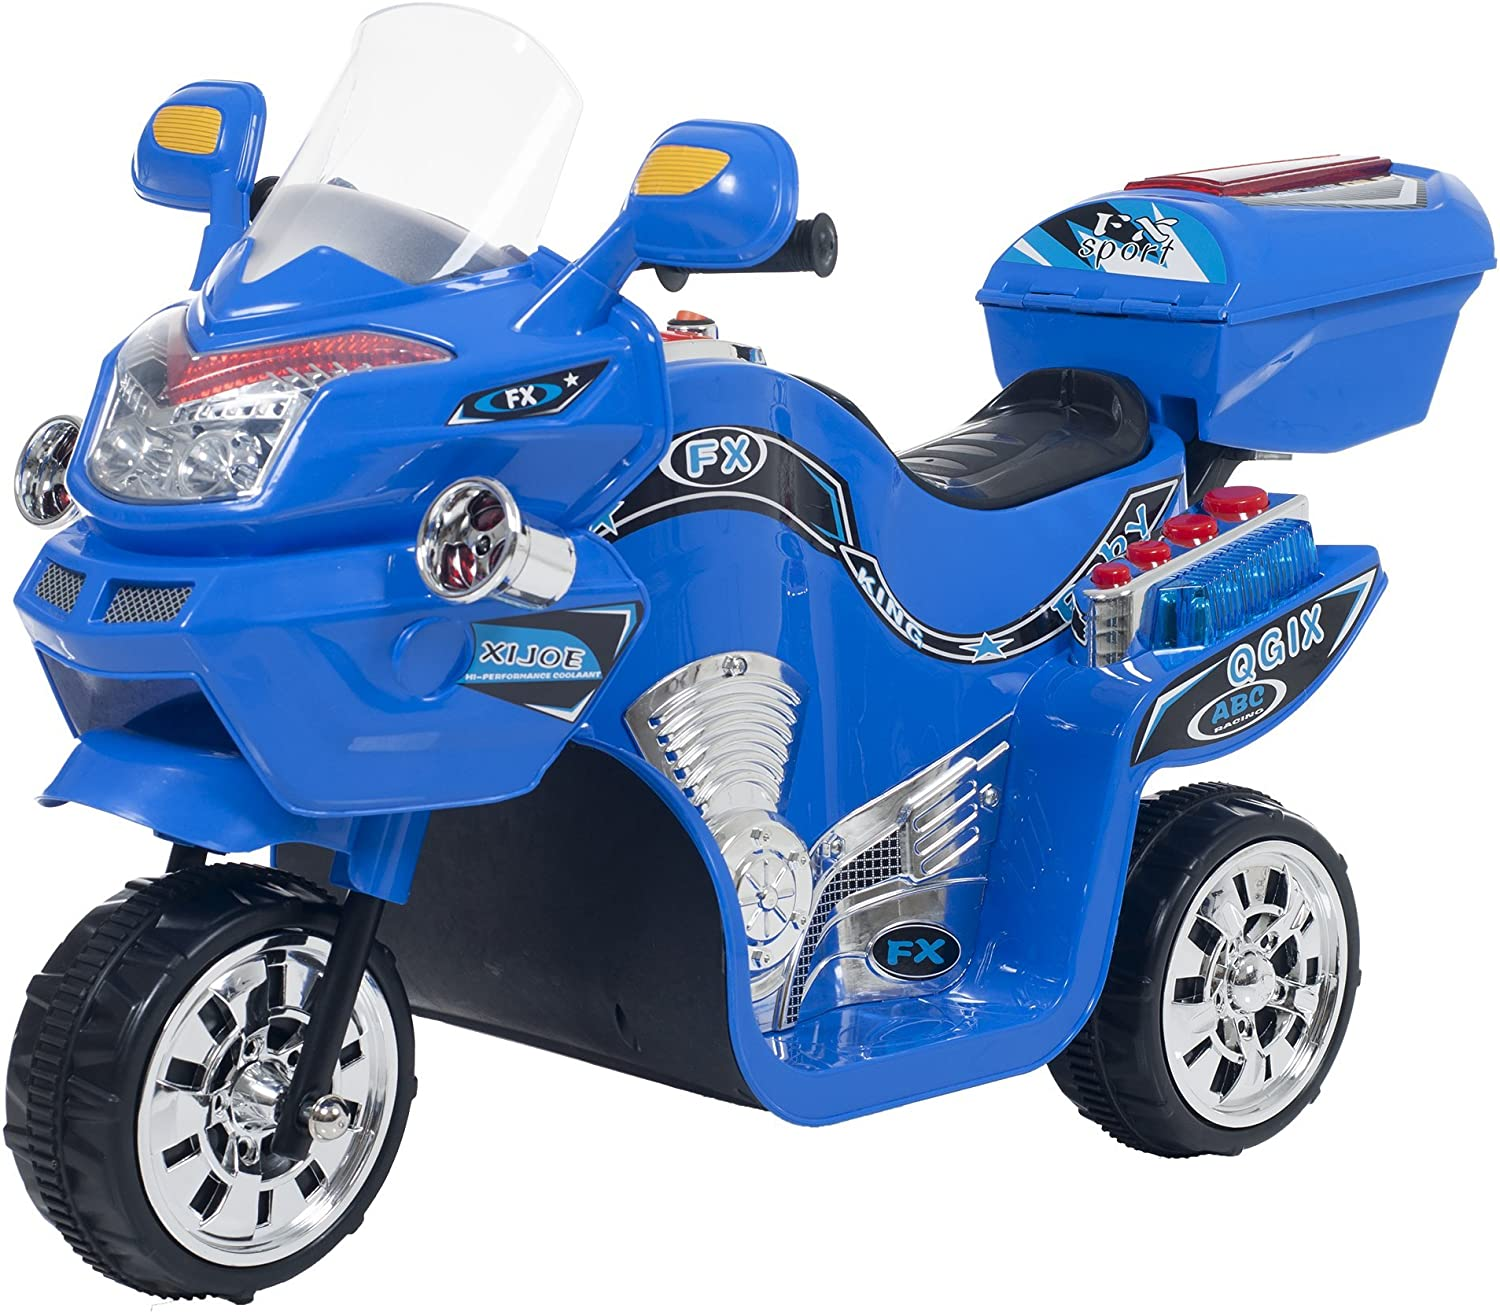 Ride on Toy, 3 Wheel Motorcycle Trike for Kids by Rockin' Rollers– Battery Powered Ride on Toys for Boys and Girls, 2 - 5 Year Old - Blue FX